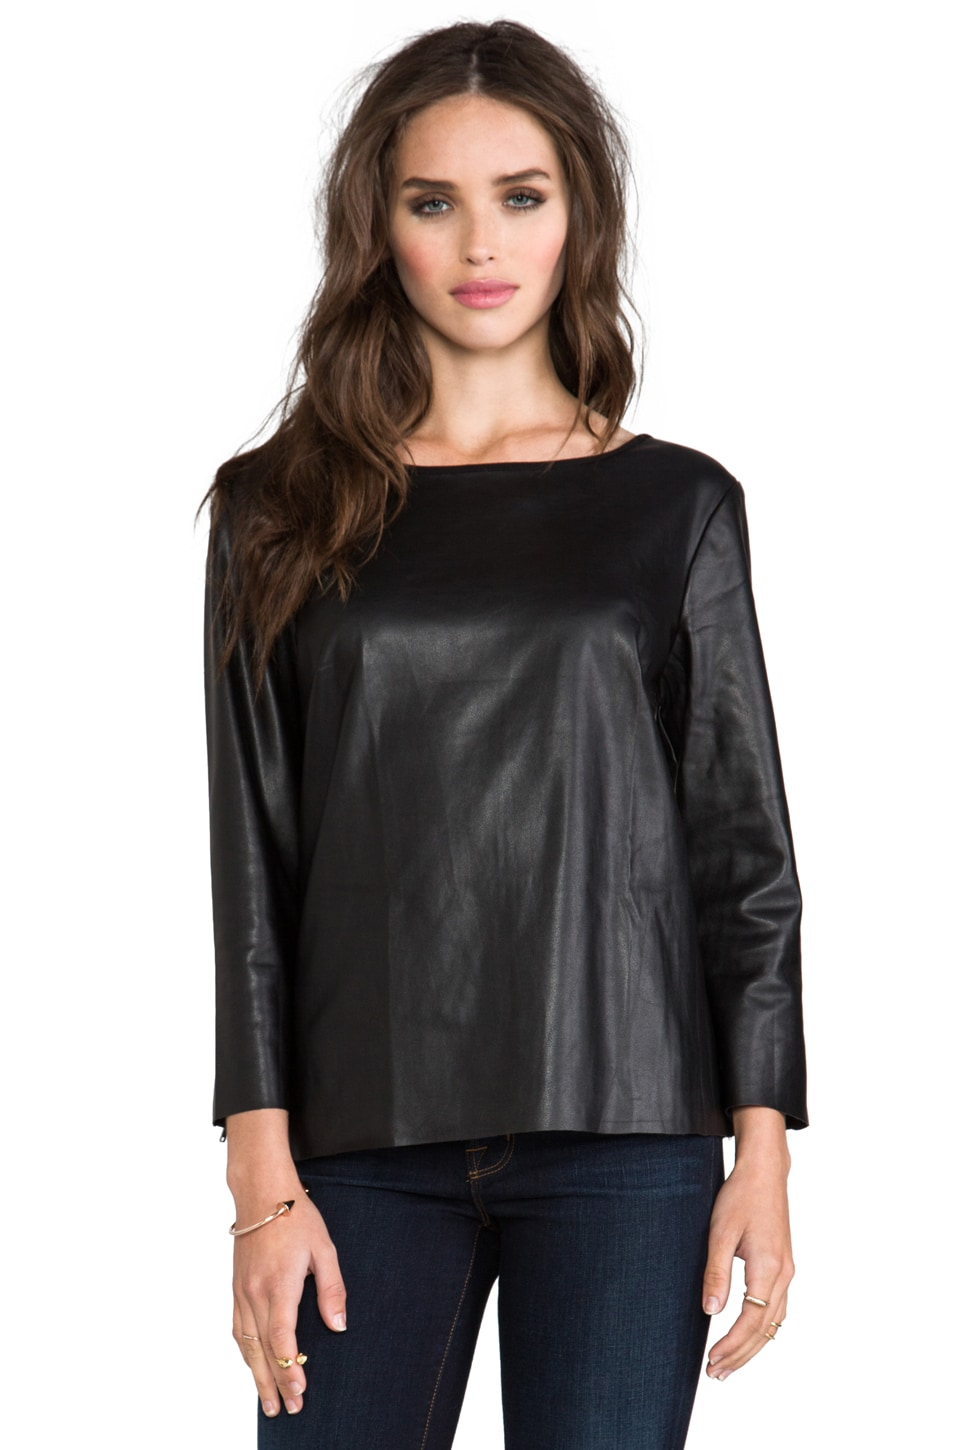 Ella Moss Sandra Faux Leather Long Sleeve Top in Black